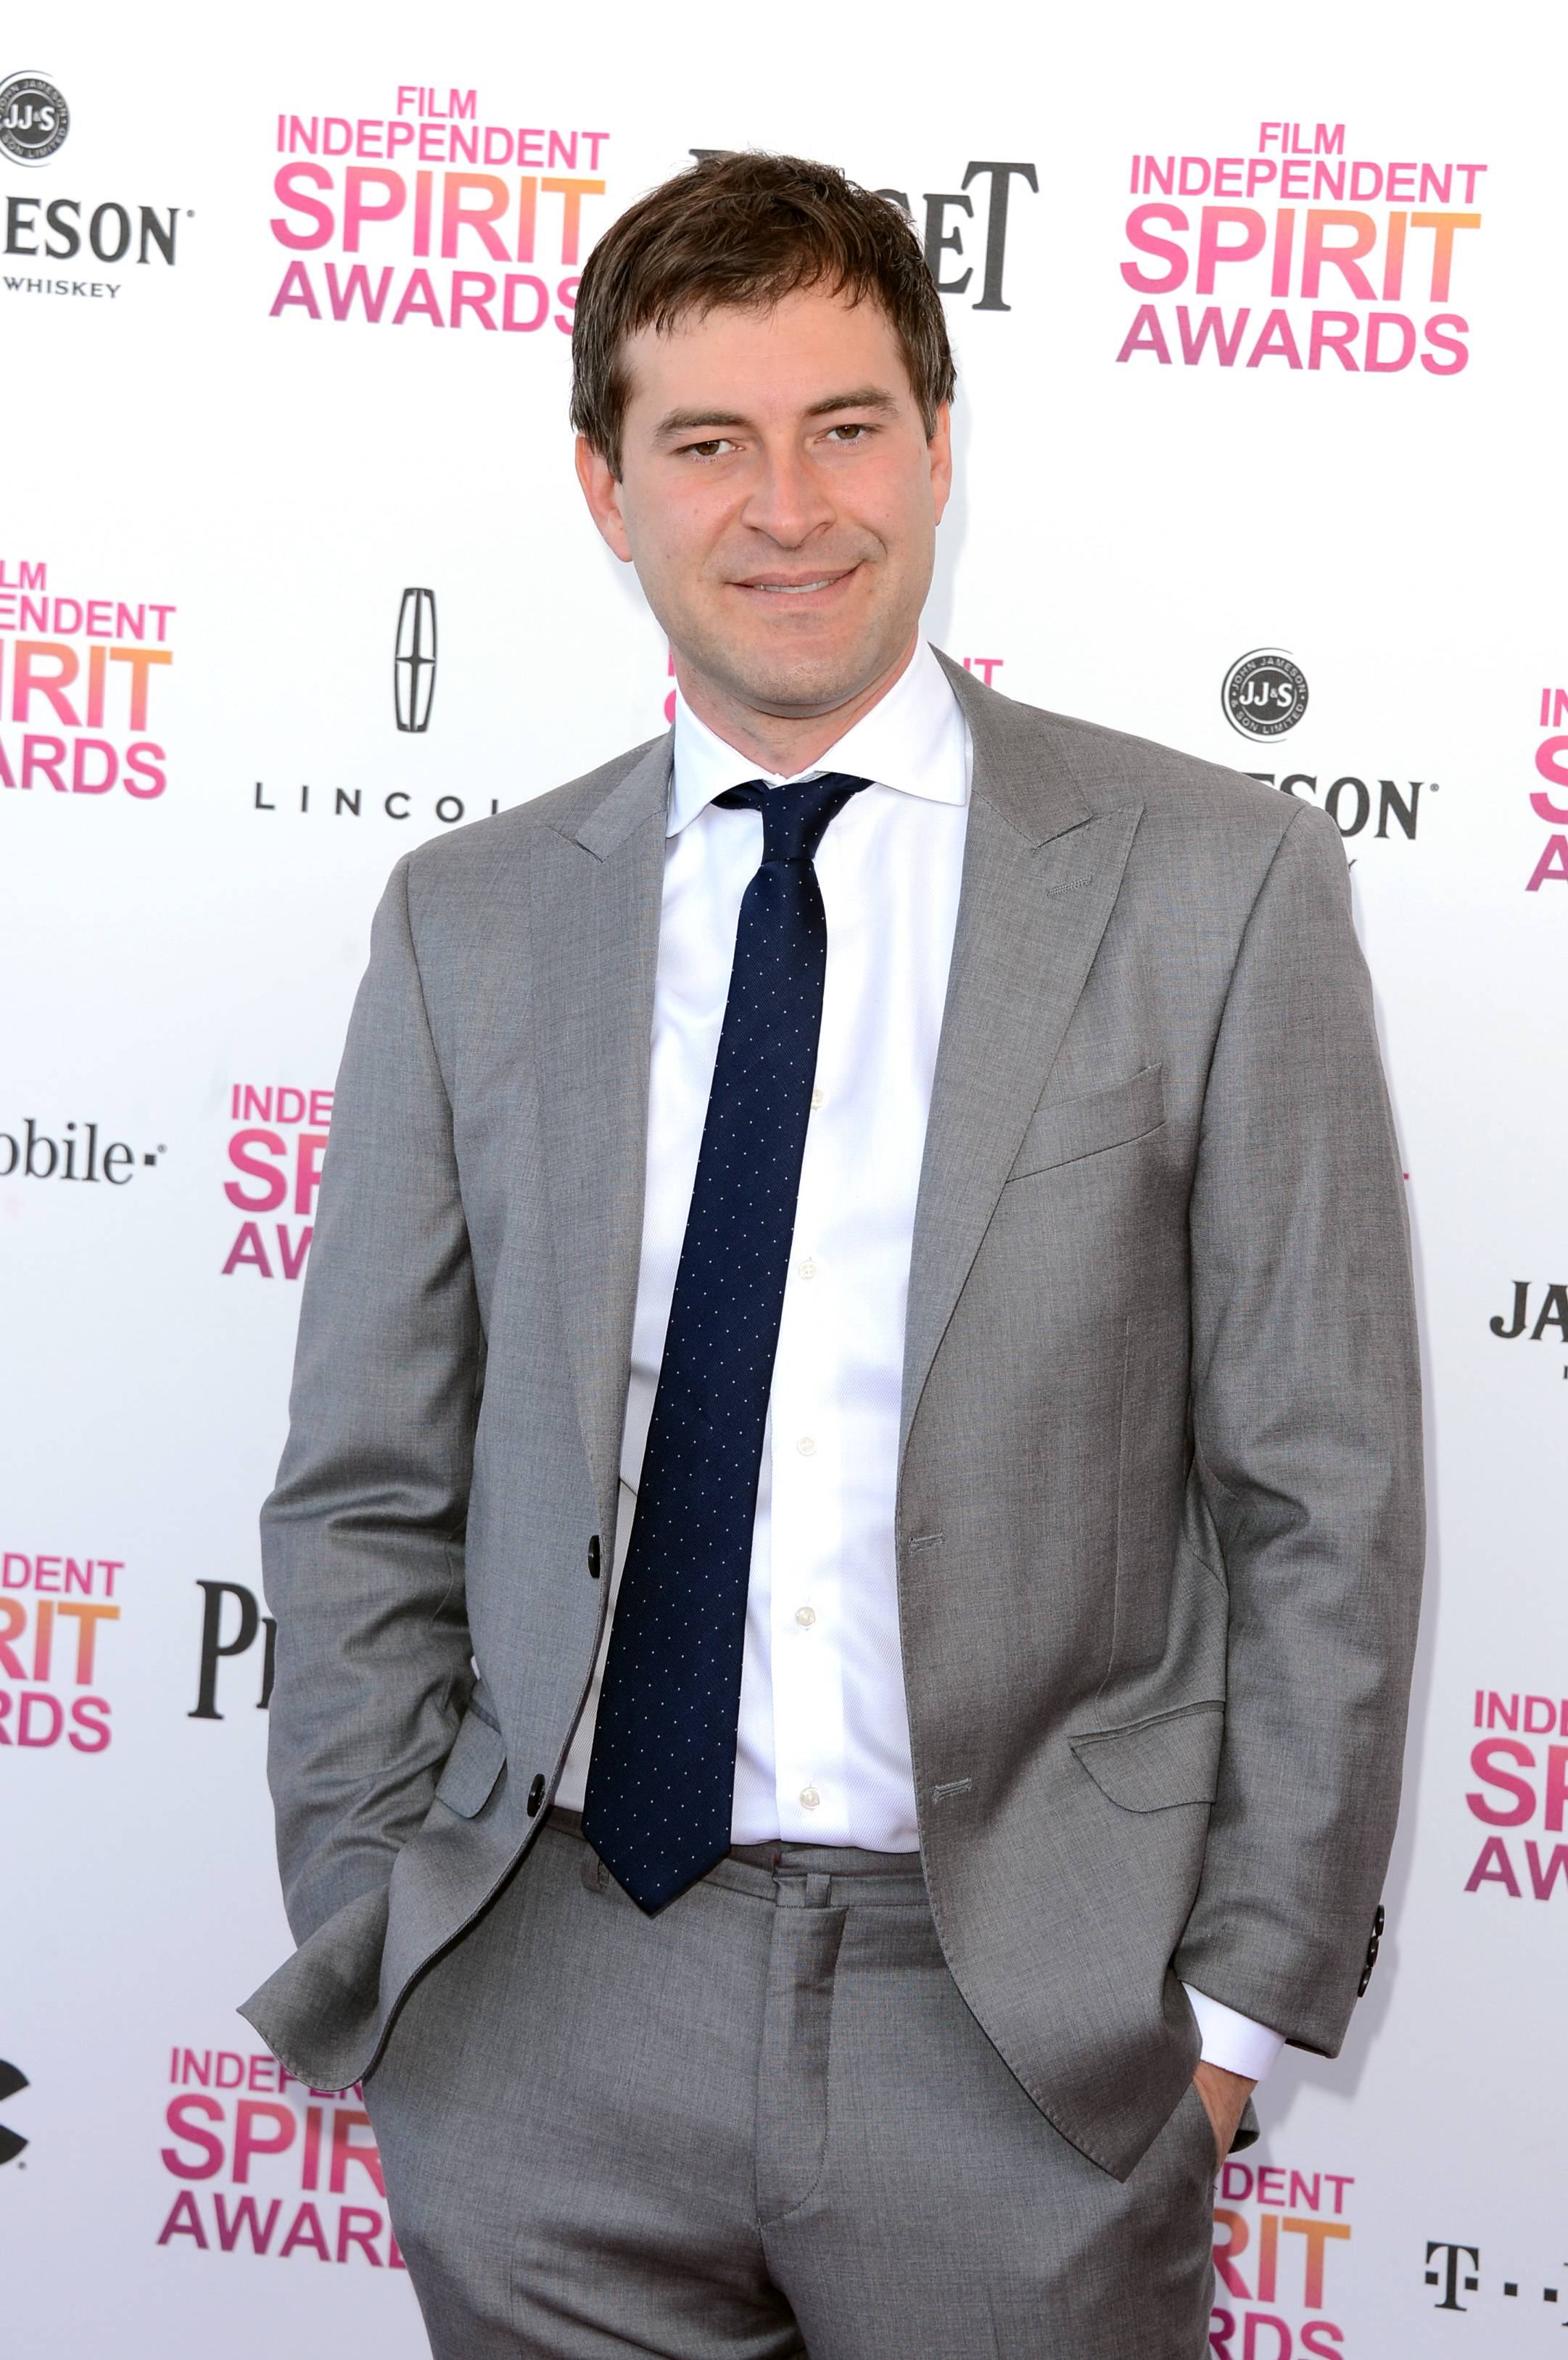 Mark Duplass on the red carpet at the Spirit Awards 2013.